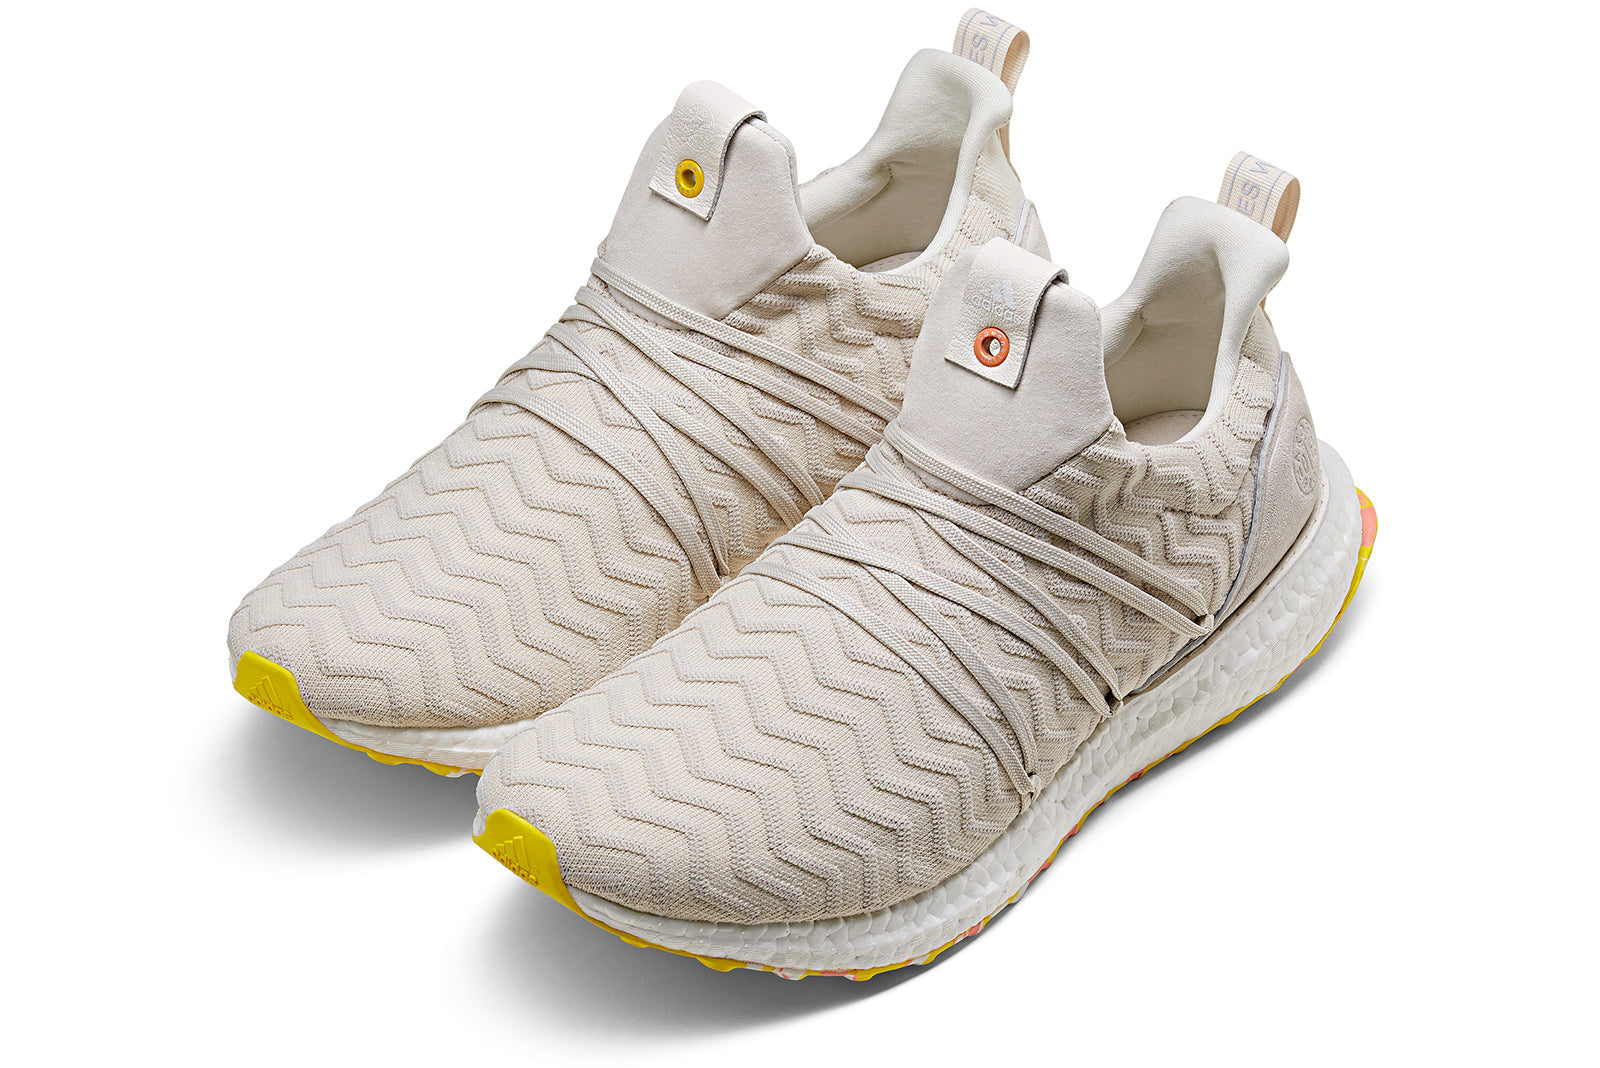 b3112629dcf adidas Consortium Ultraboost x AKOG BB7370 Core White Core White Punjab  Launch  Saturday 25th of August